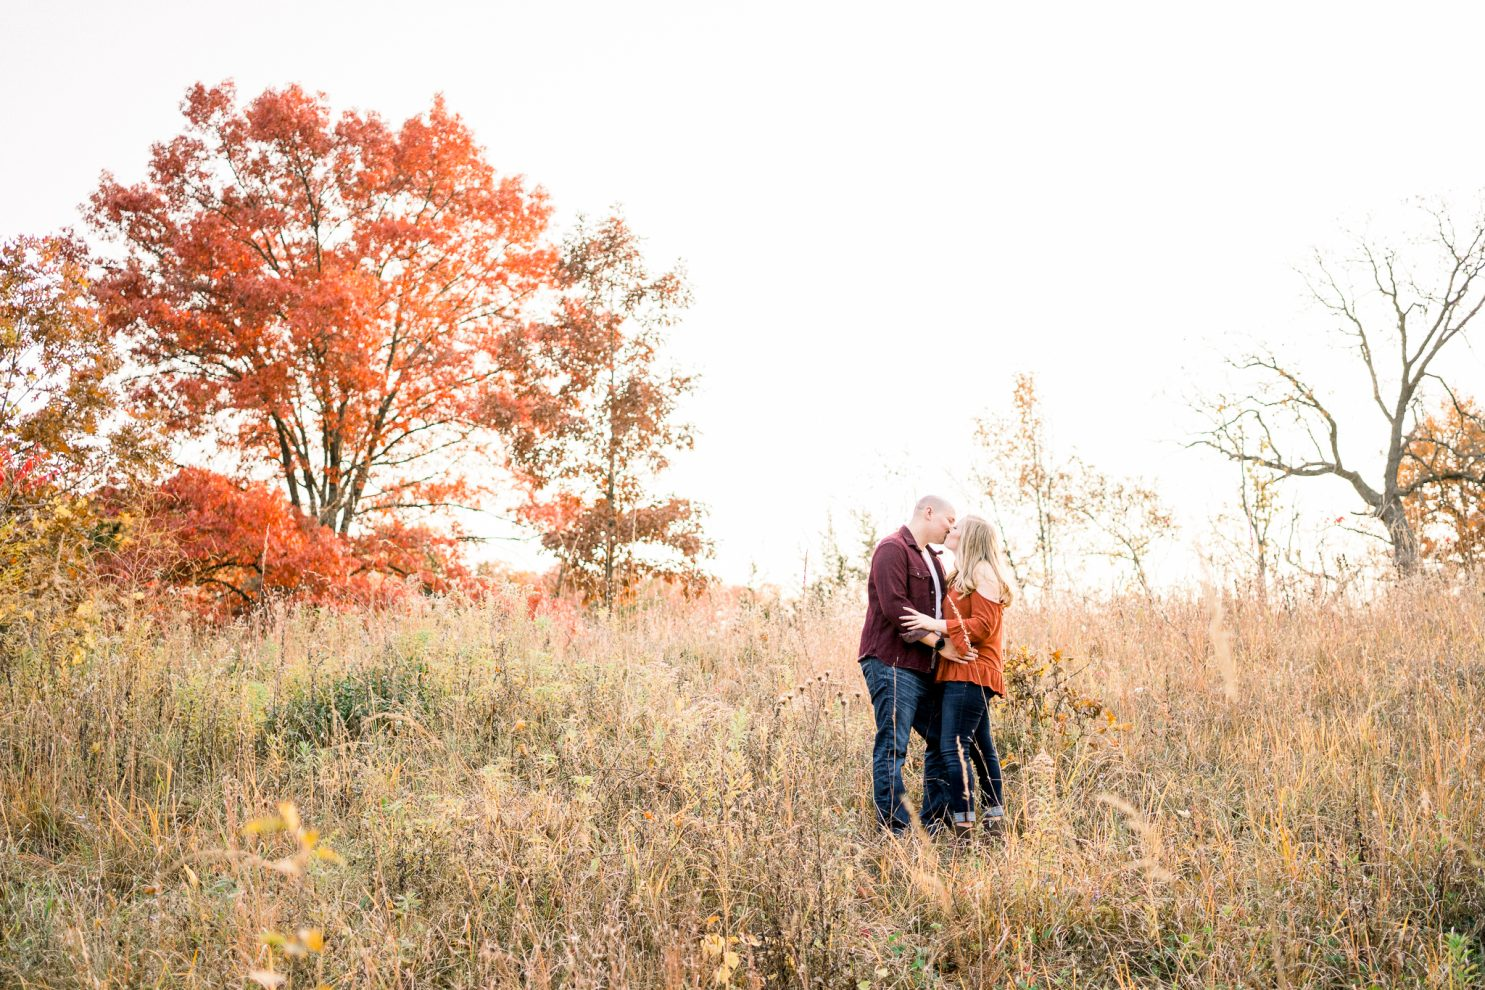 Kendra Alex Fine Art Engagement Photography Vermillion Falls Hastings MN 2020 51